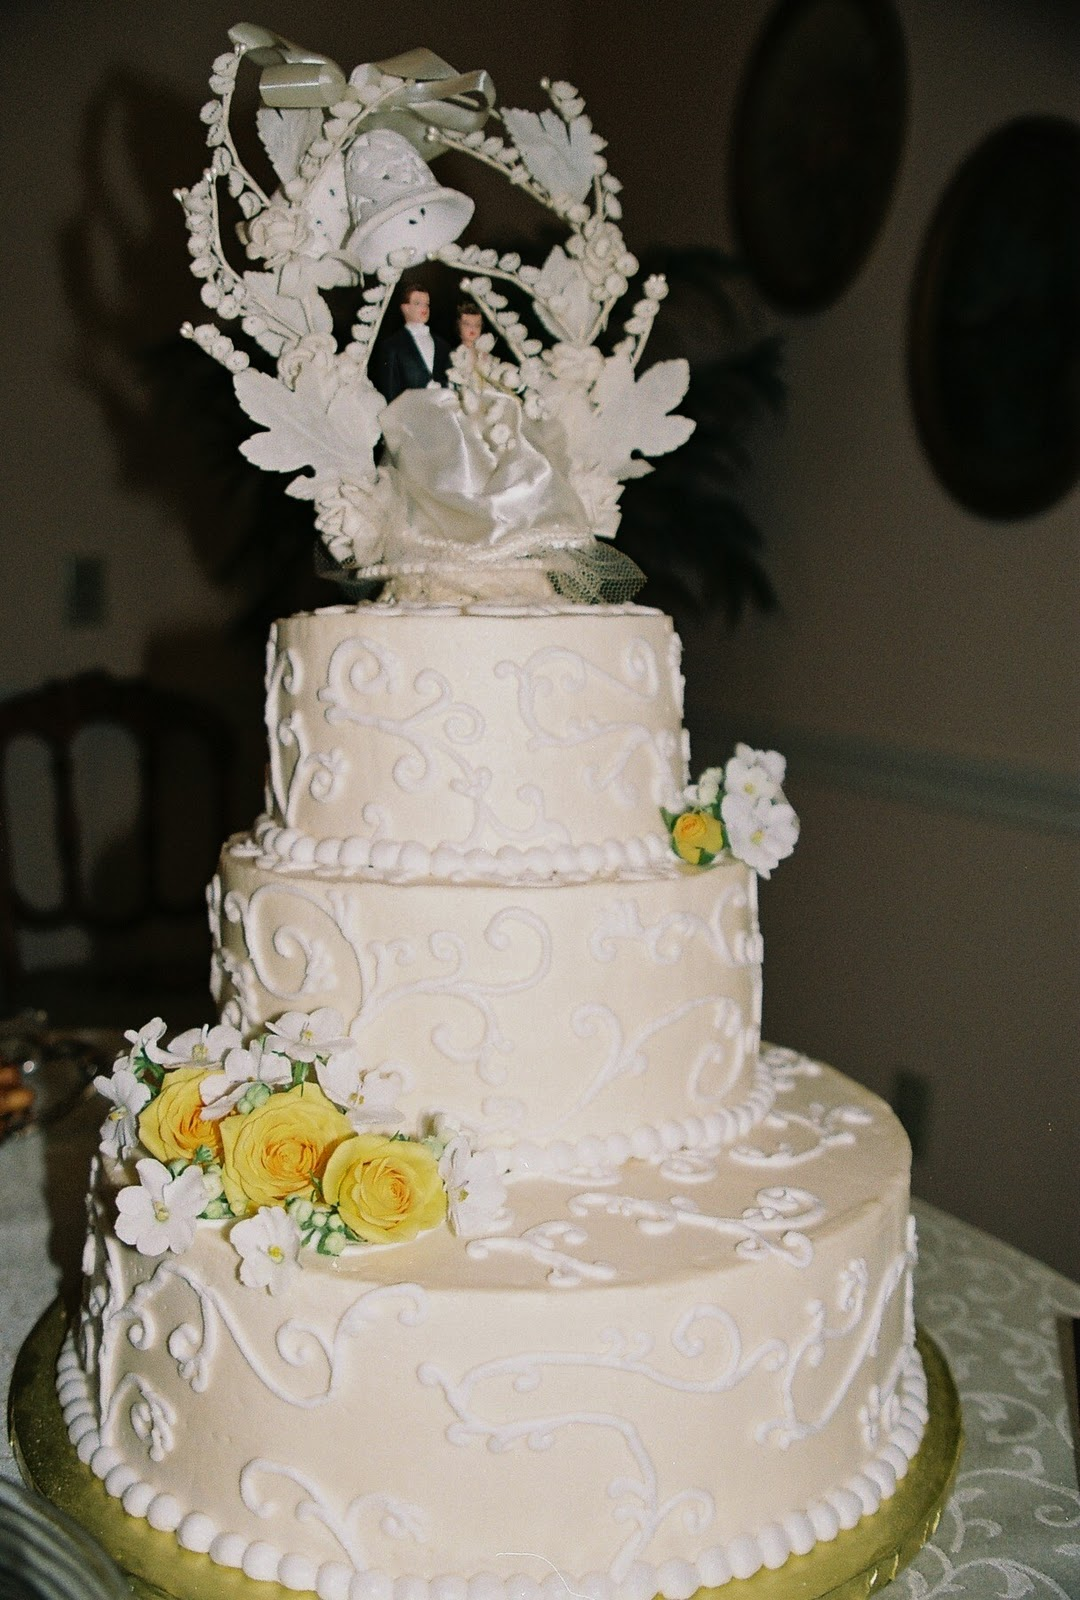 Sativa s blog 50th wedding anniversary cakes